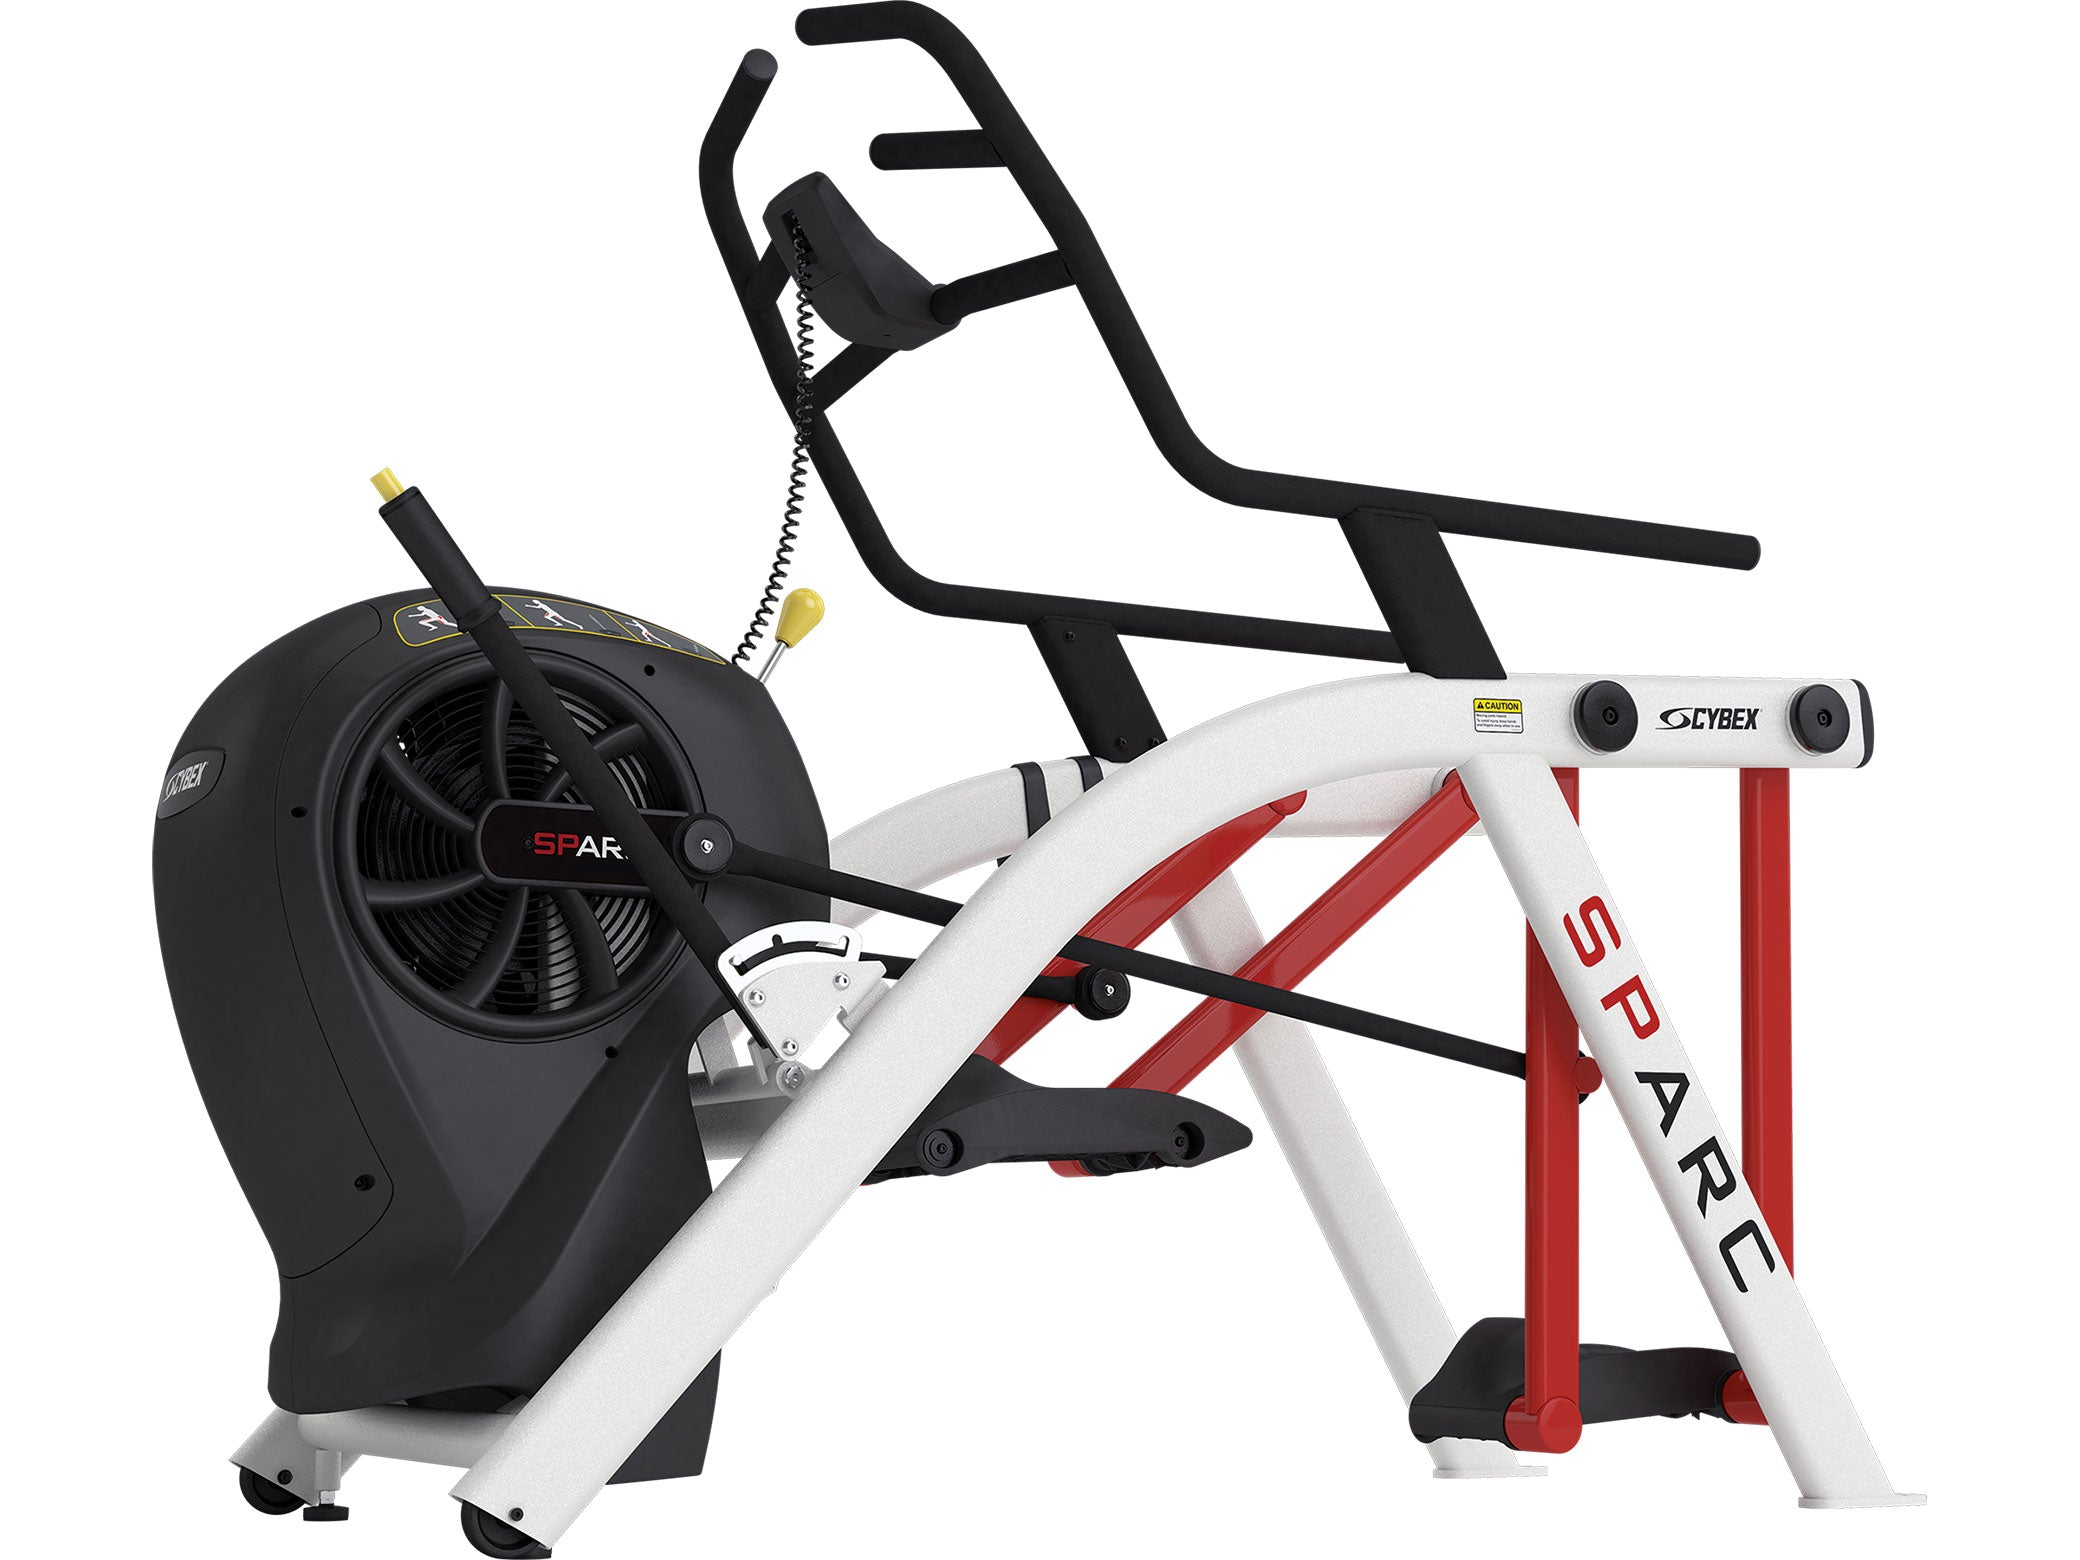 Used Cybex Strength SPARC Arc Trainer White